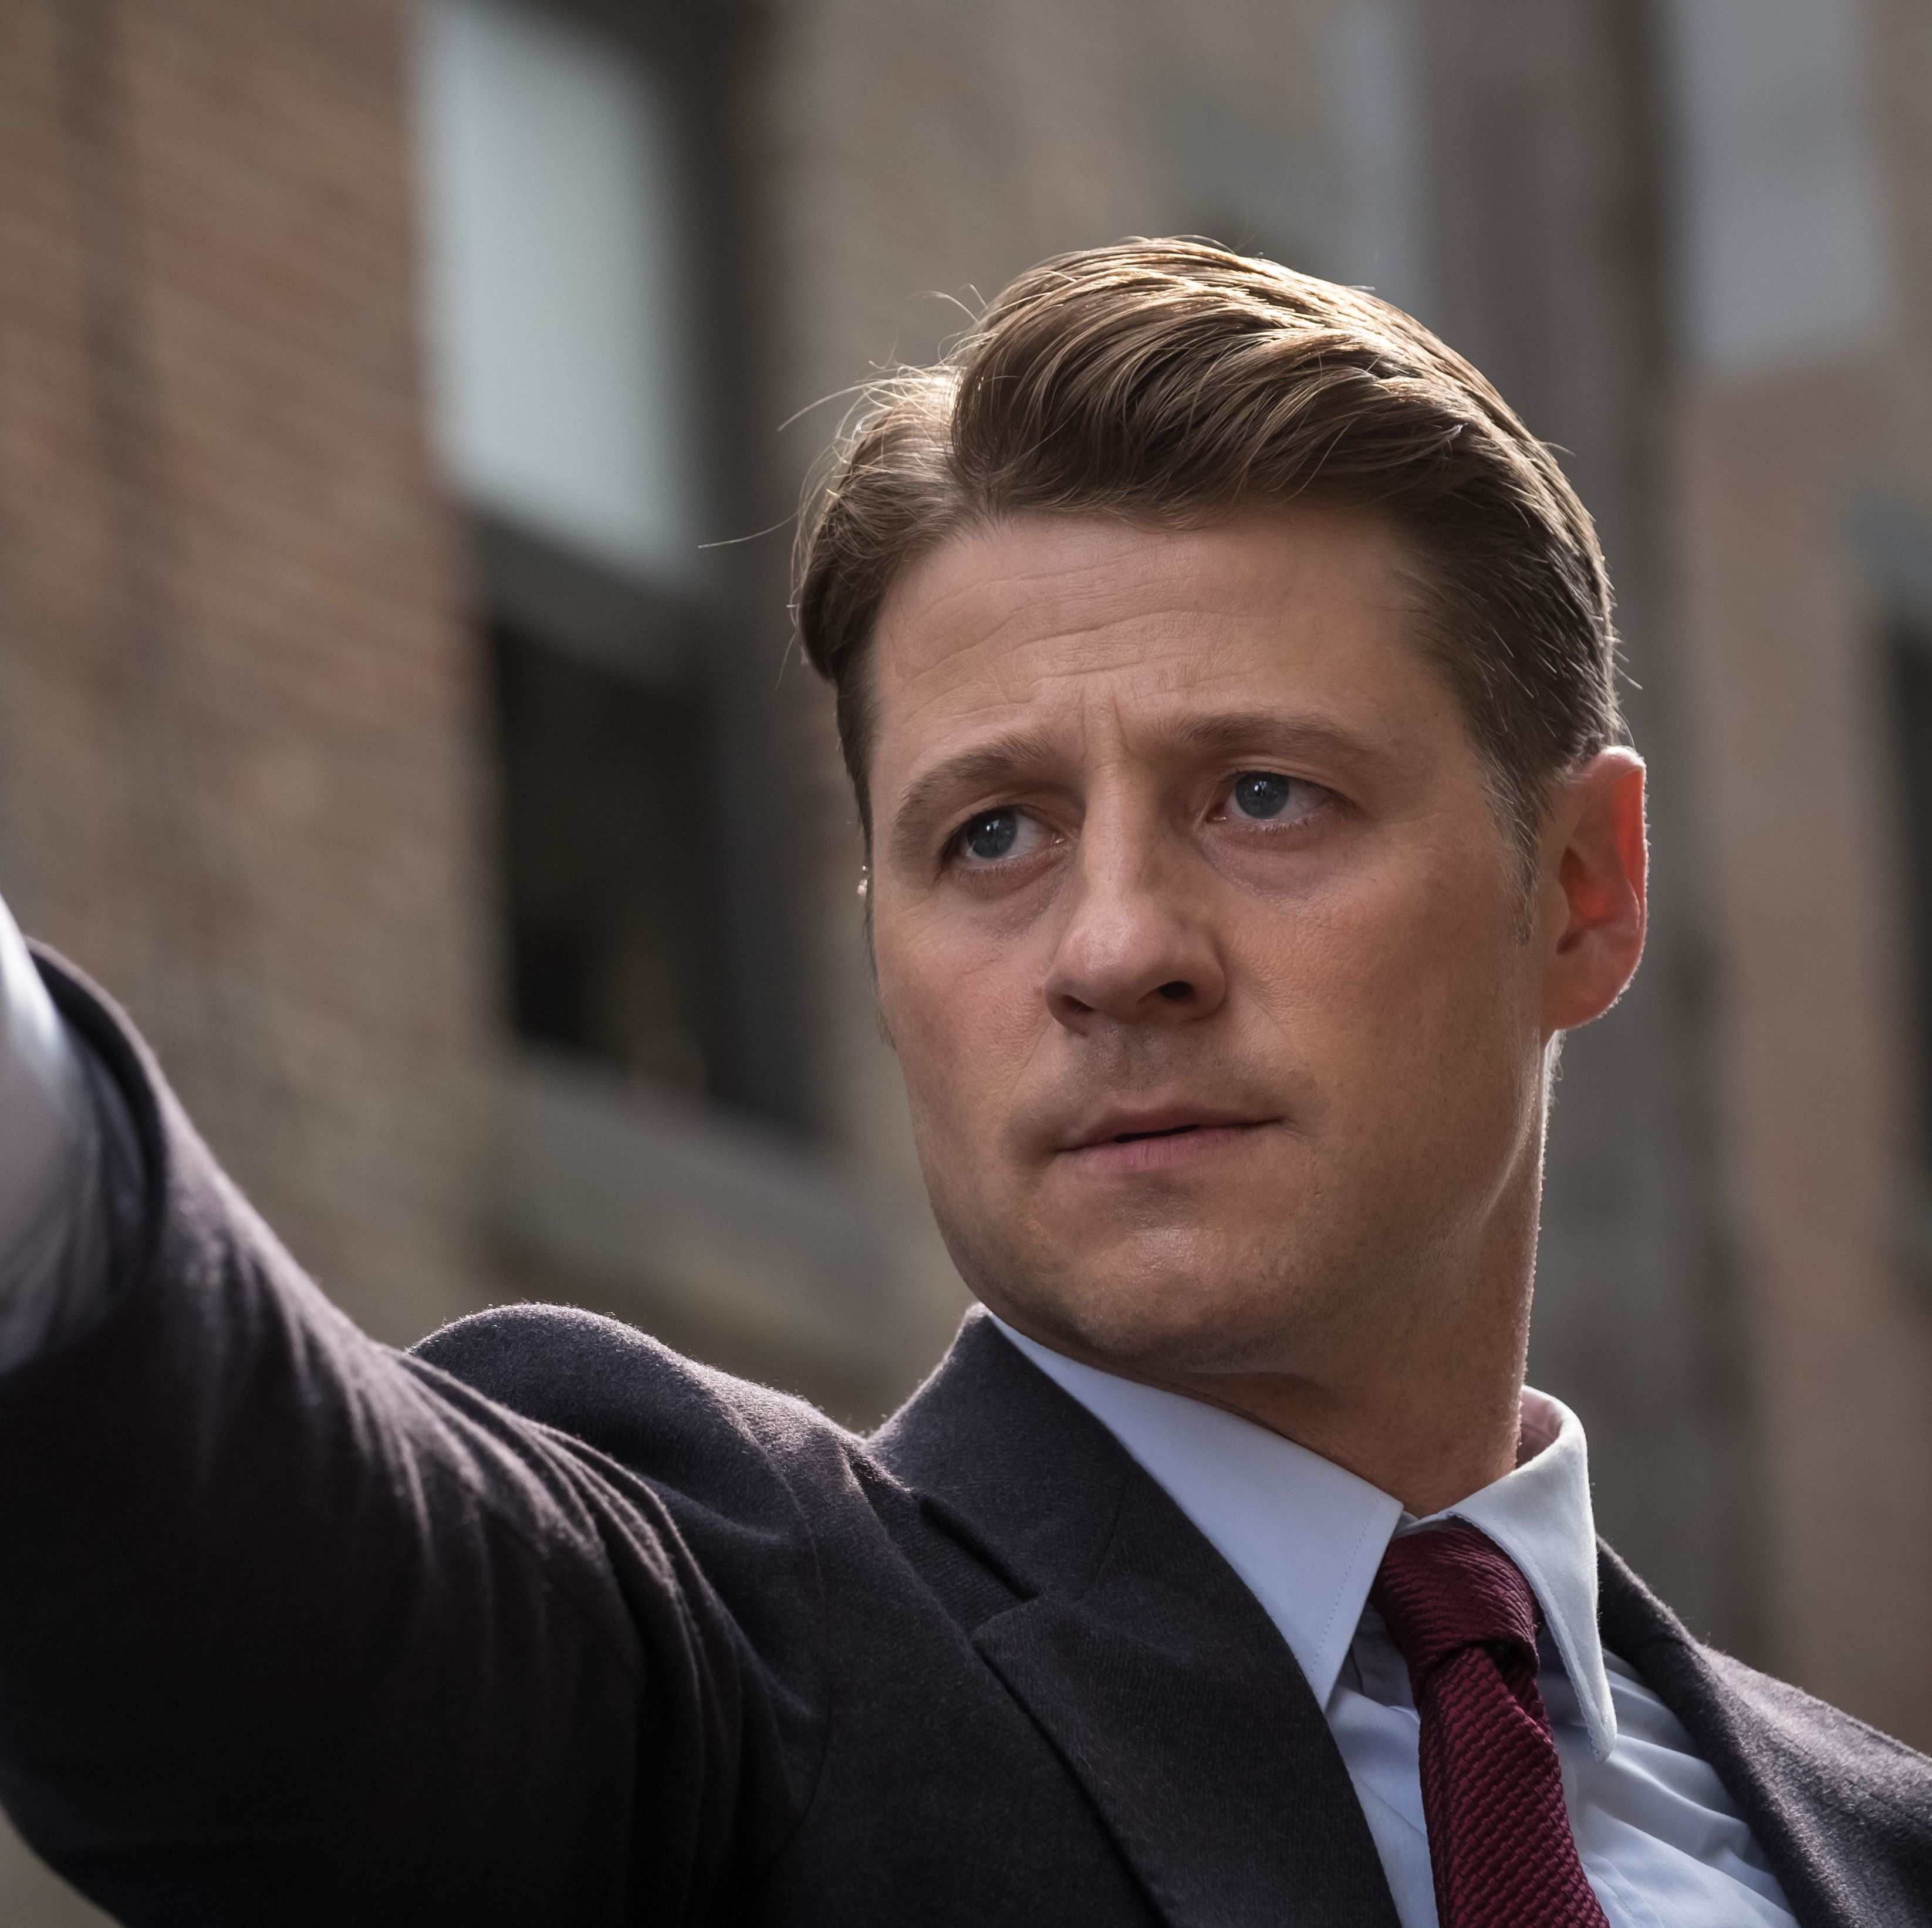 Gotham final episode pictures see Gordon finally adopt classic comic book look